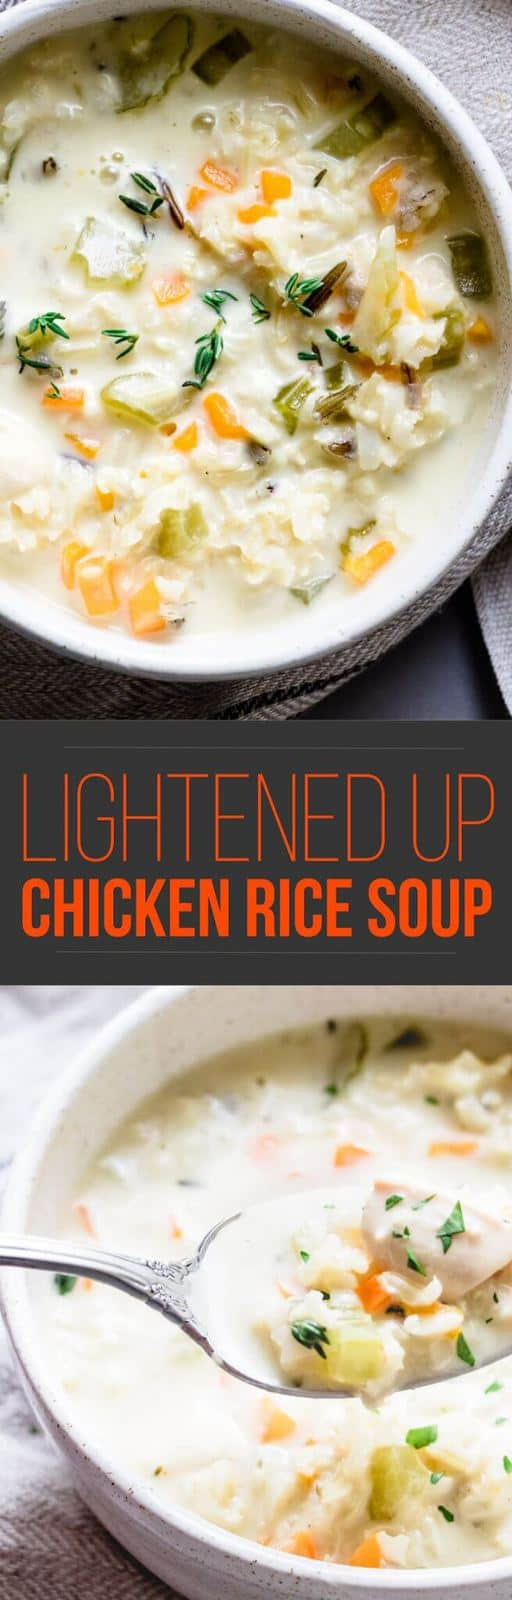 There's no better way to keep the fall wind at bay than to sit down and cozy up with this nourishing and hearty lightened up creamy chicken rice soup.